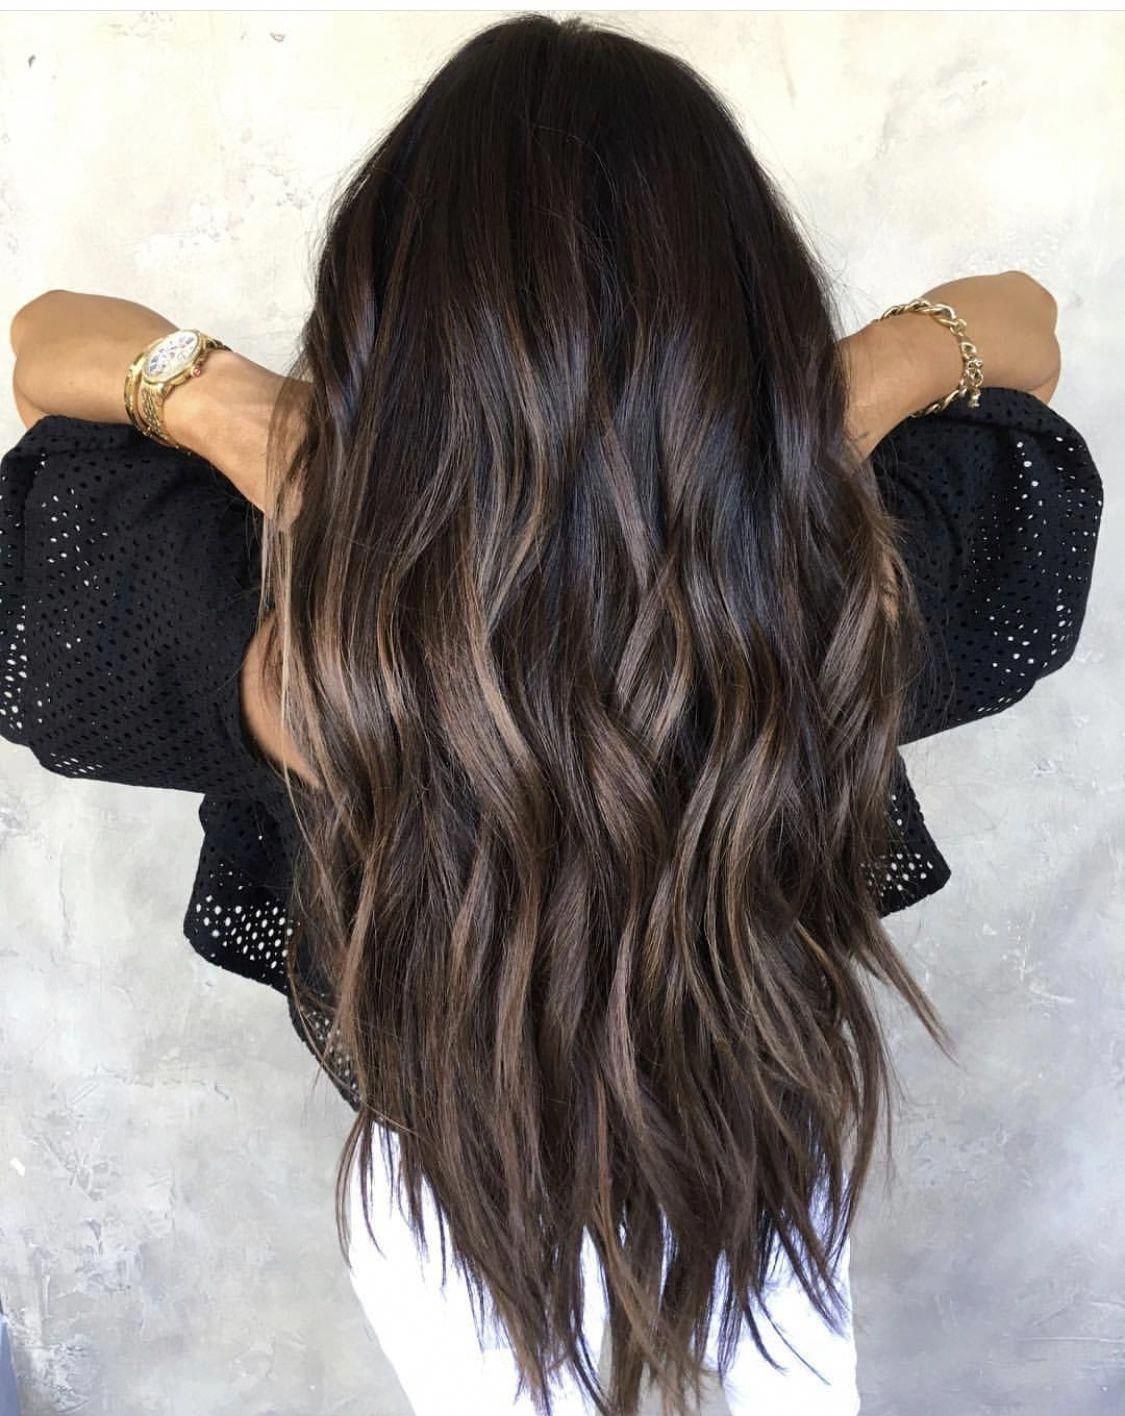 Gorgeous Brunette Hair Color Brunettehairstyles Hair Color For Black Hair Hair Styles Subtle Balayage Brunette